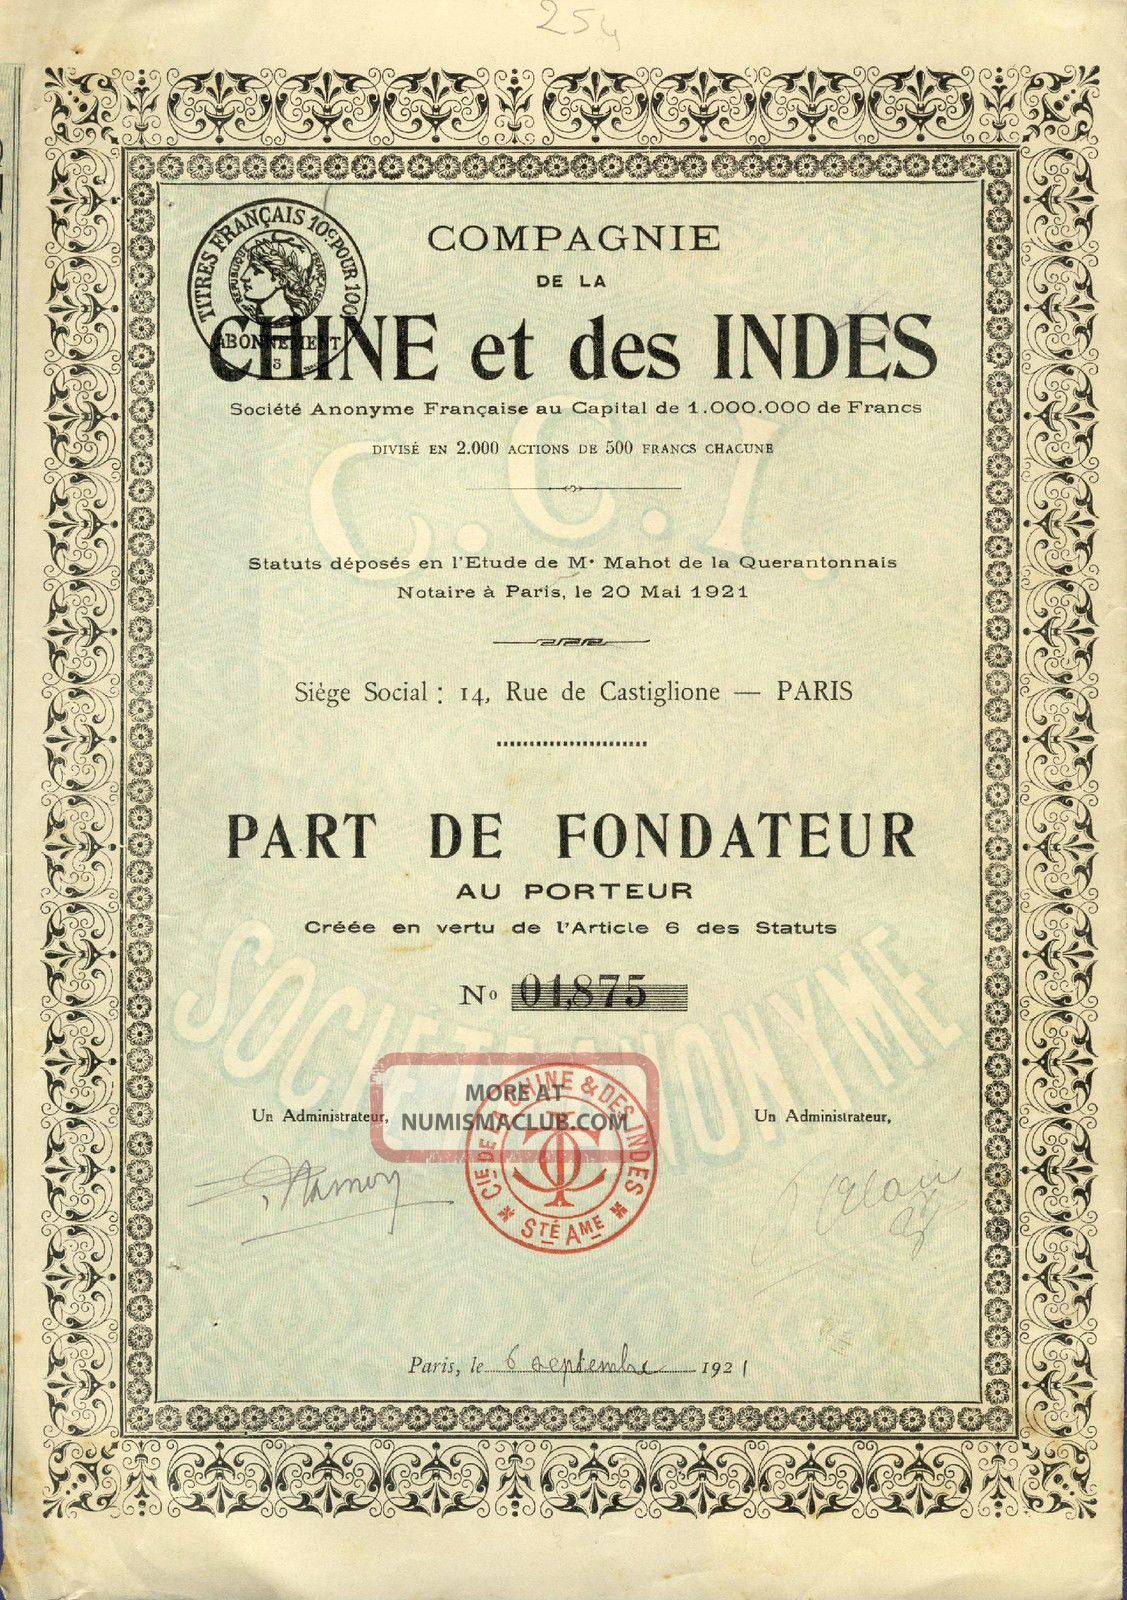 Share Certificate Stock Chine & Indes Cie China & Indies Cy Paris Action 1921 World photo